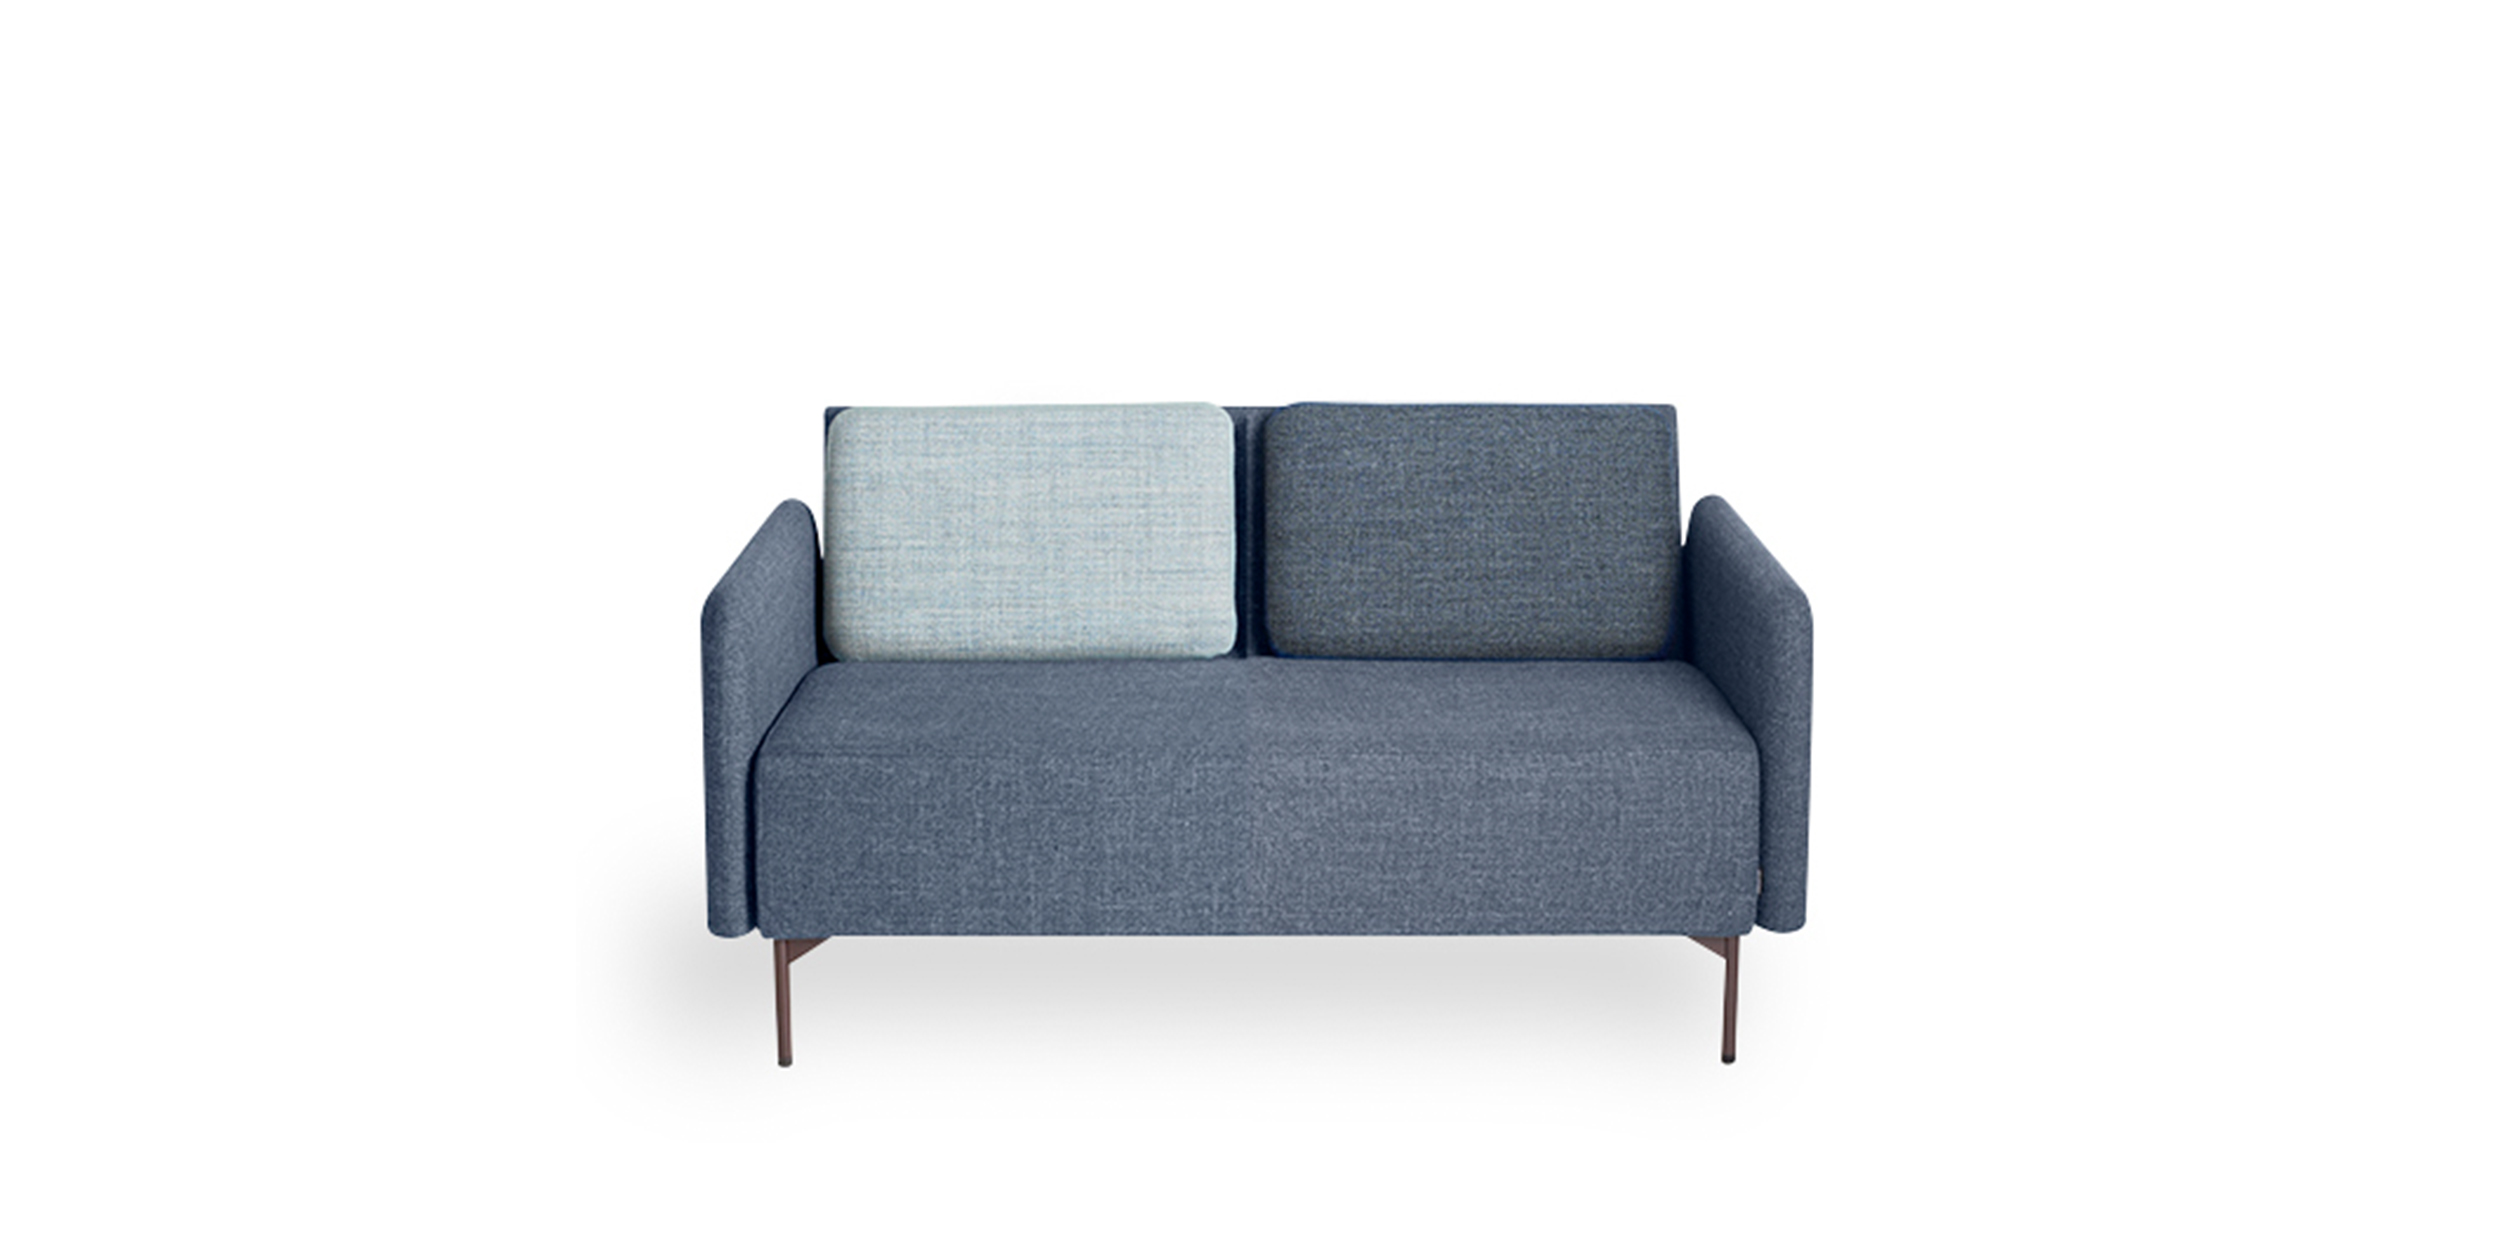 Playback 2 Seater By Claesson Koivisto Rune